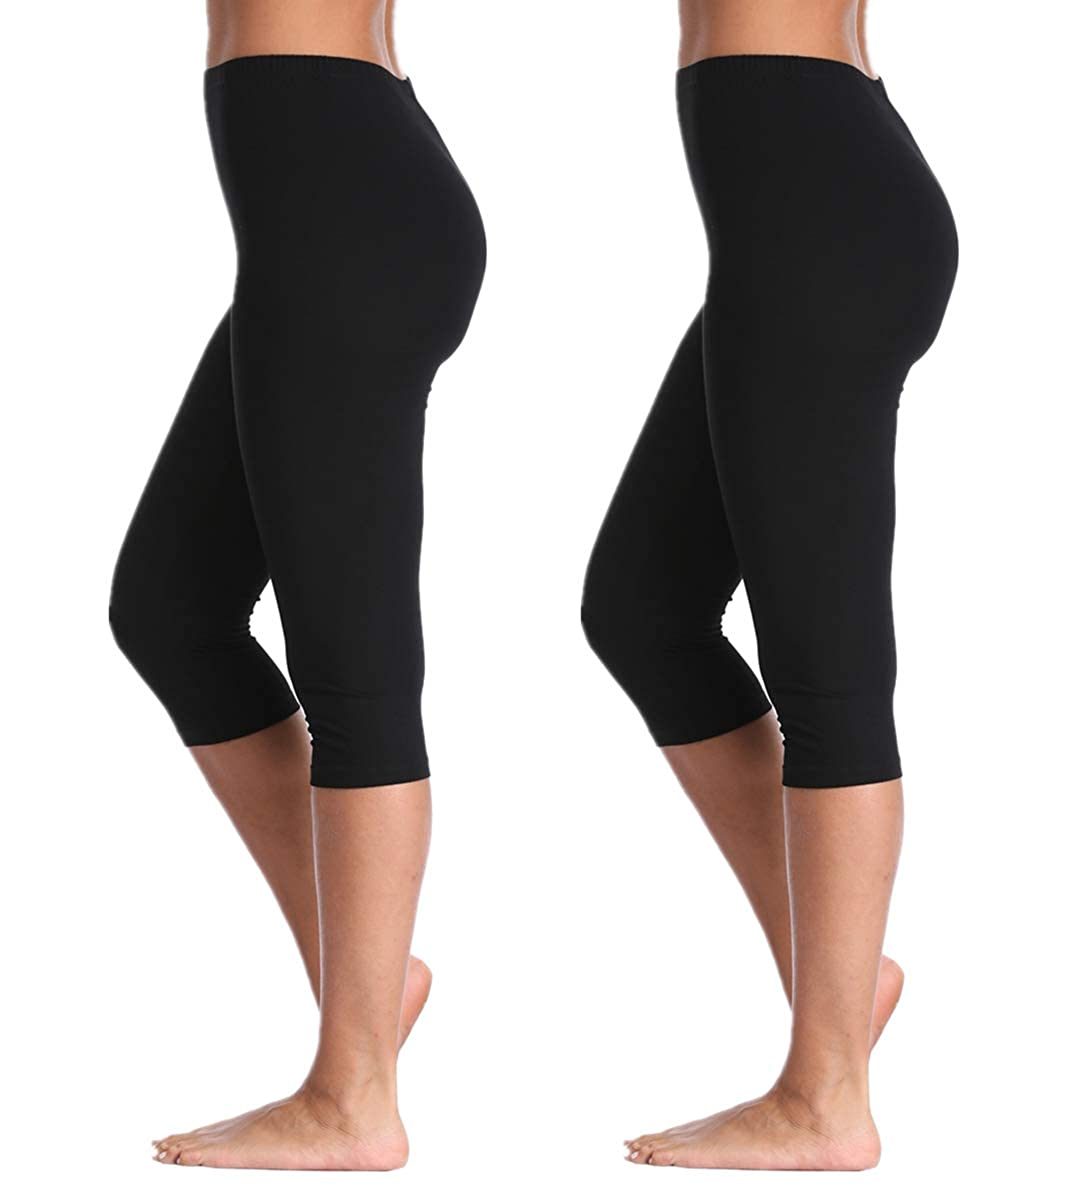 b9dacf7f1ea483 Material: Modal. Stretchy and healthy. Breathable and comfortable. STYLE:  Basic Cropped leggings, Solid Capri leggings; 3/4 length leggings; Plus size  ...